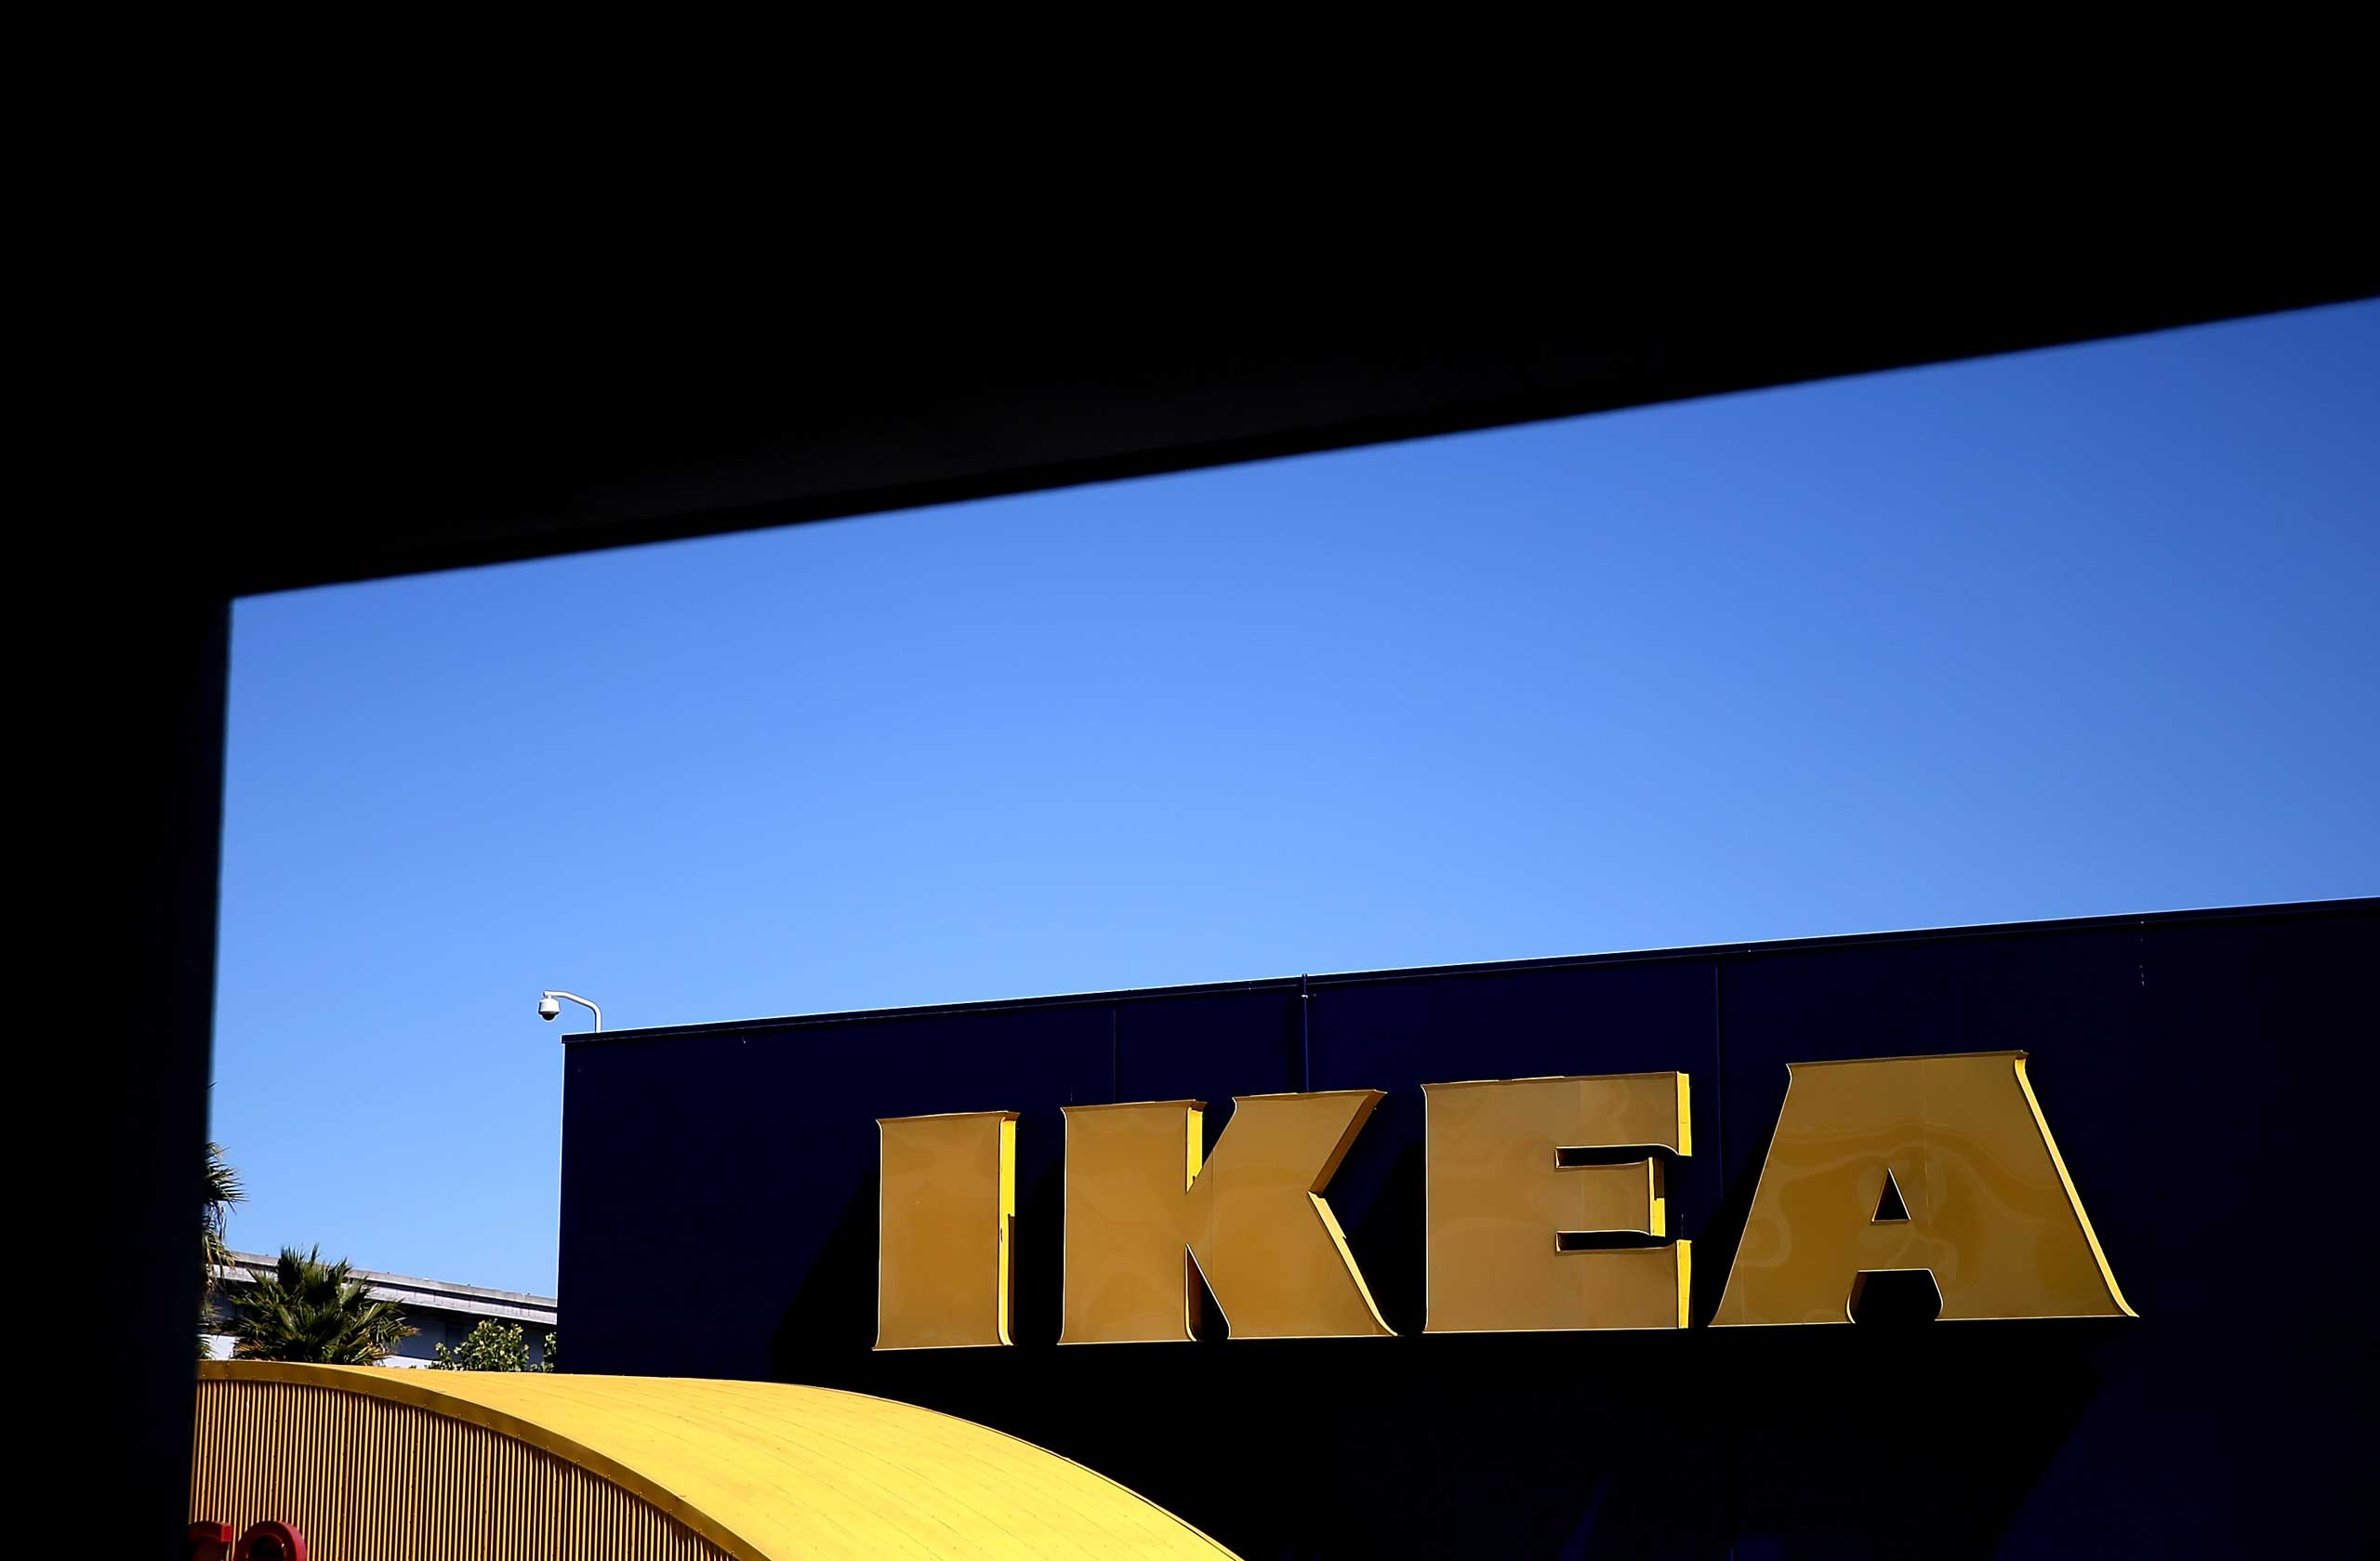 A sign is posted on the exterior of an IKEA store on June 26, 2014 in Emeryville, Calif.